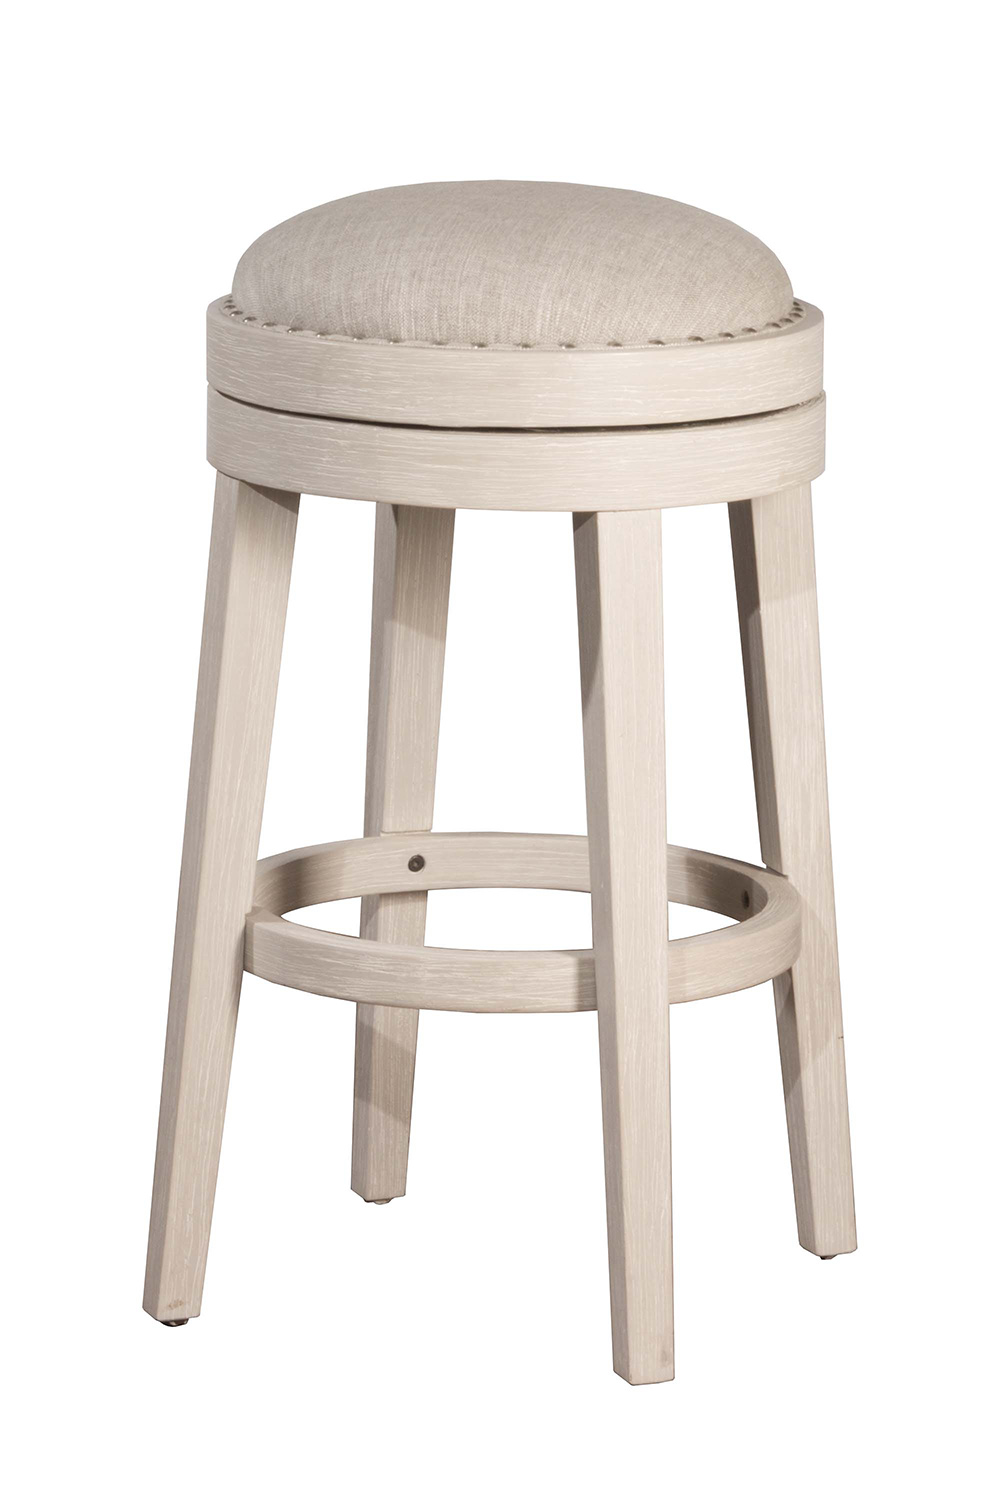 Hillsdale Carlito Backless Swivel Counter Stool - White